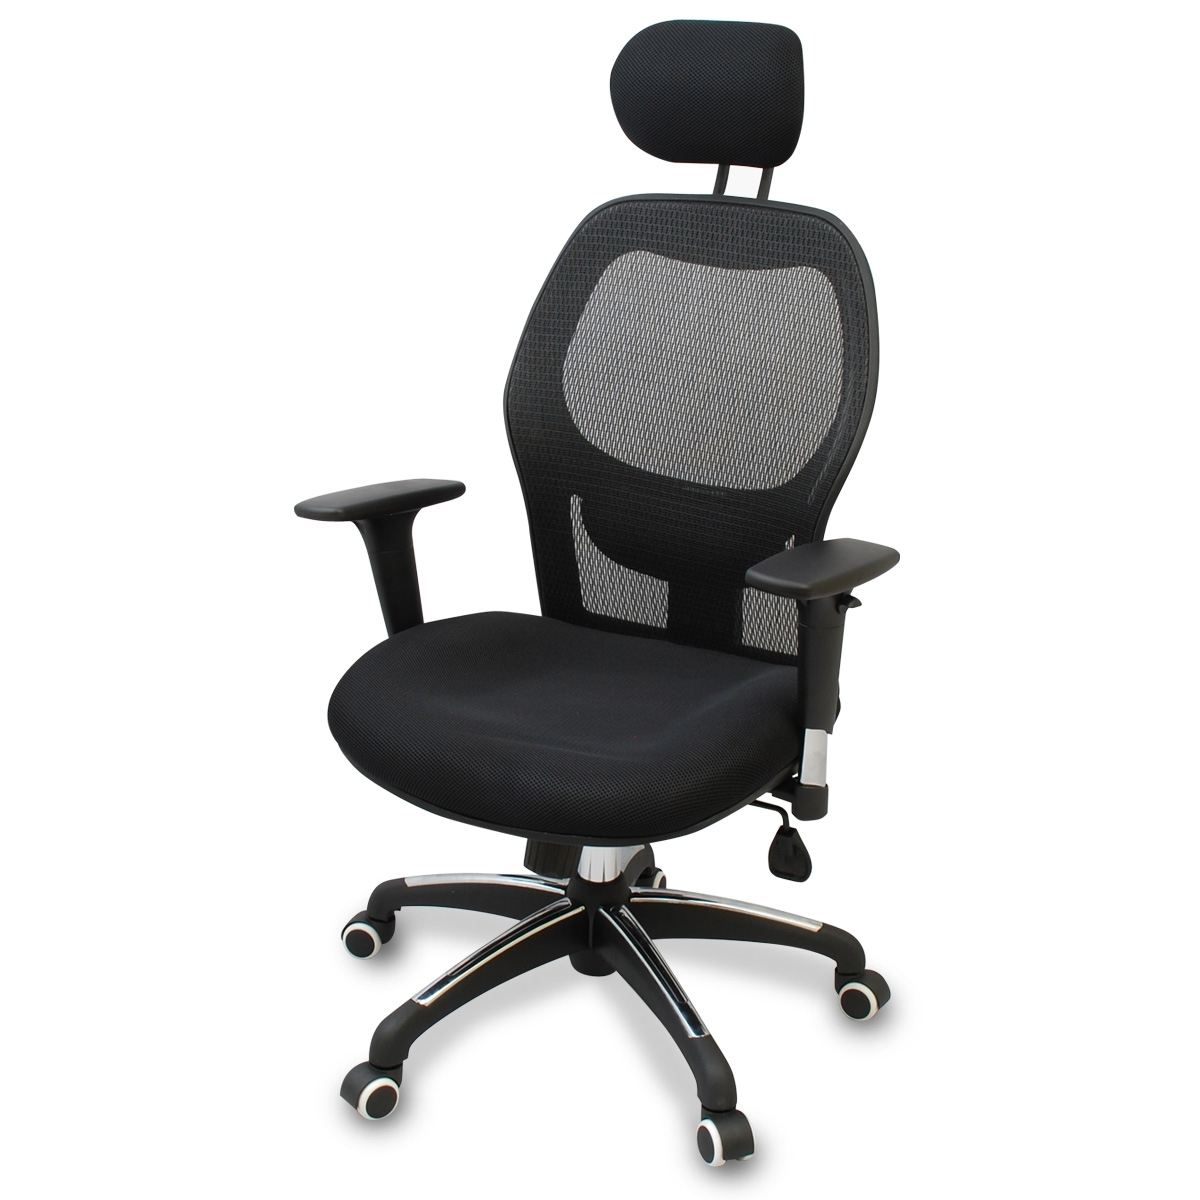 Executive Office Chairs With Adjustable Lumbar Support For Best And Newest New Mesh Ergonomic Office Chair W/ Adjustable Headrest, Arms And (Gallery 14 of 20)